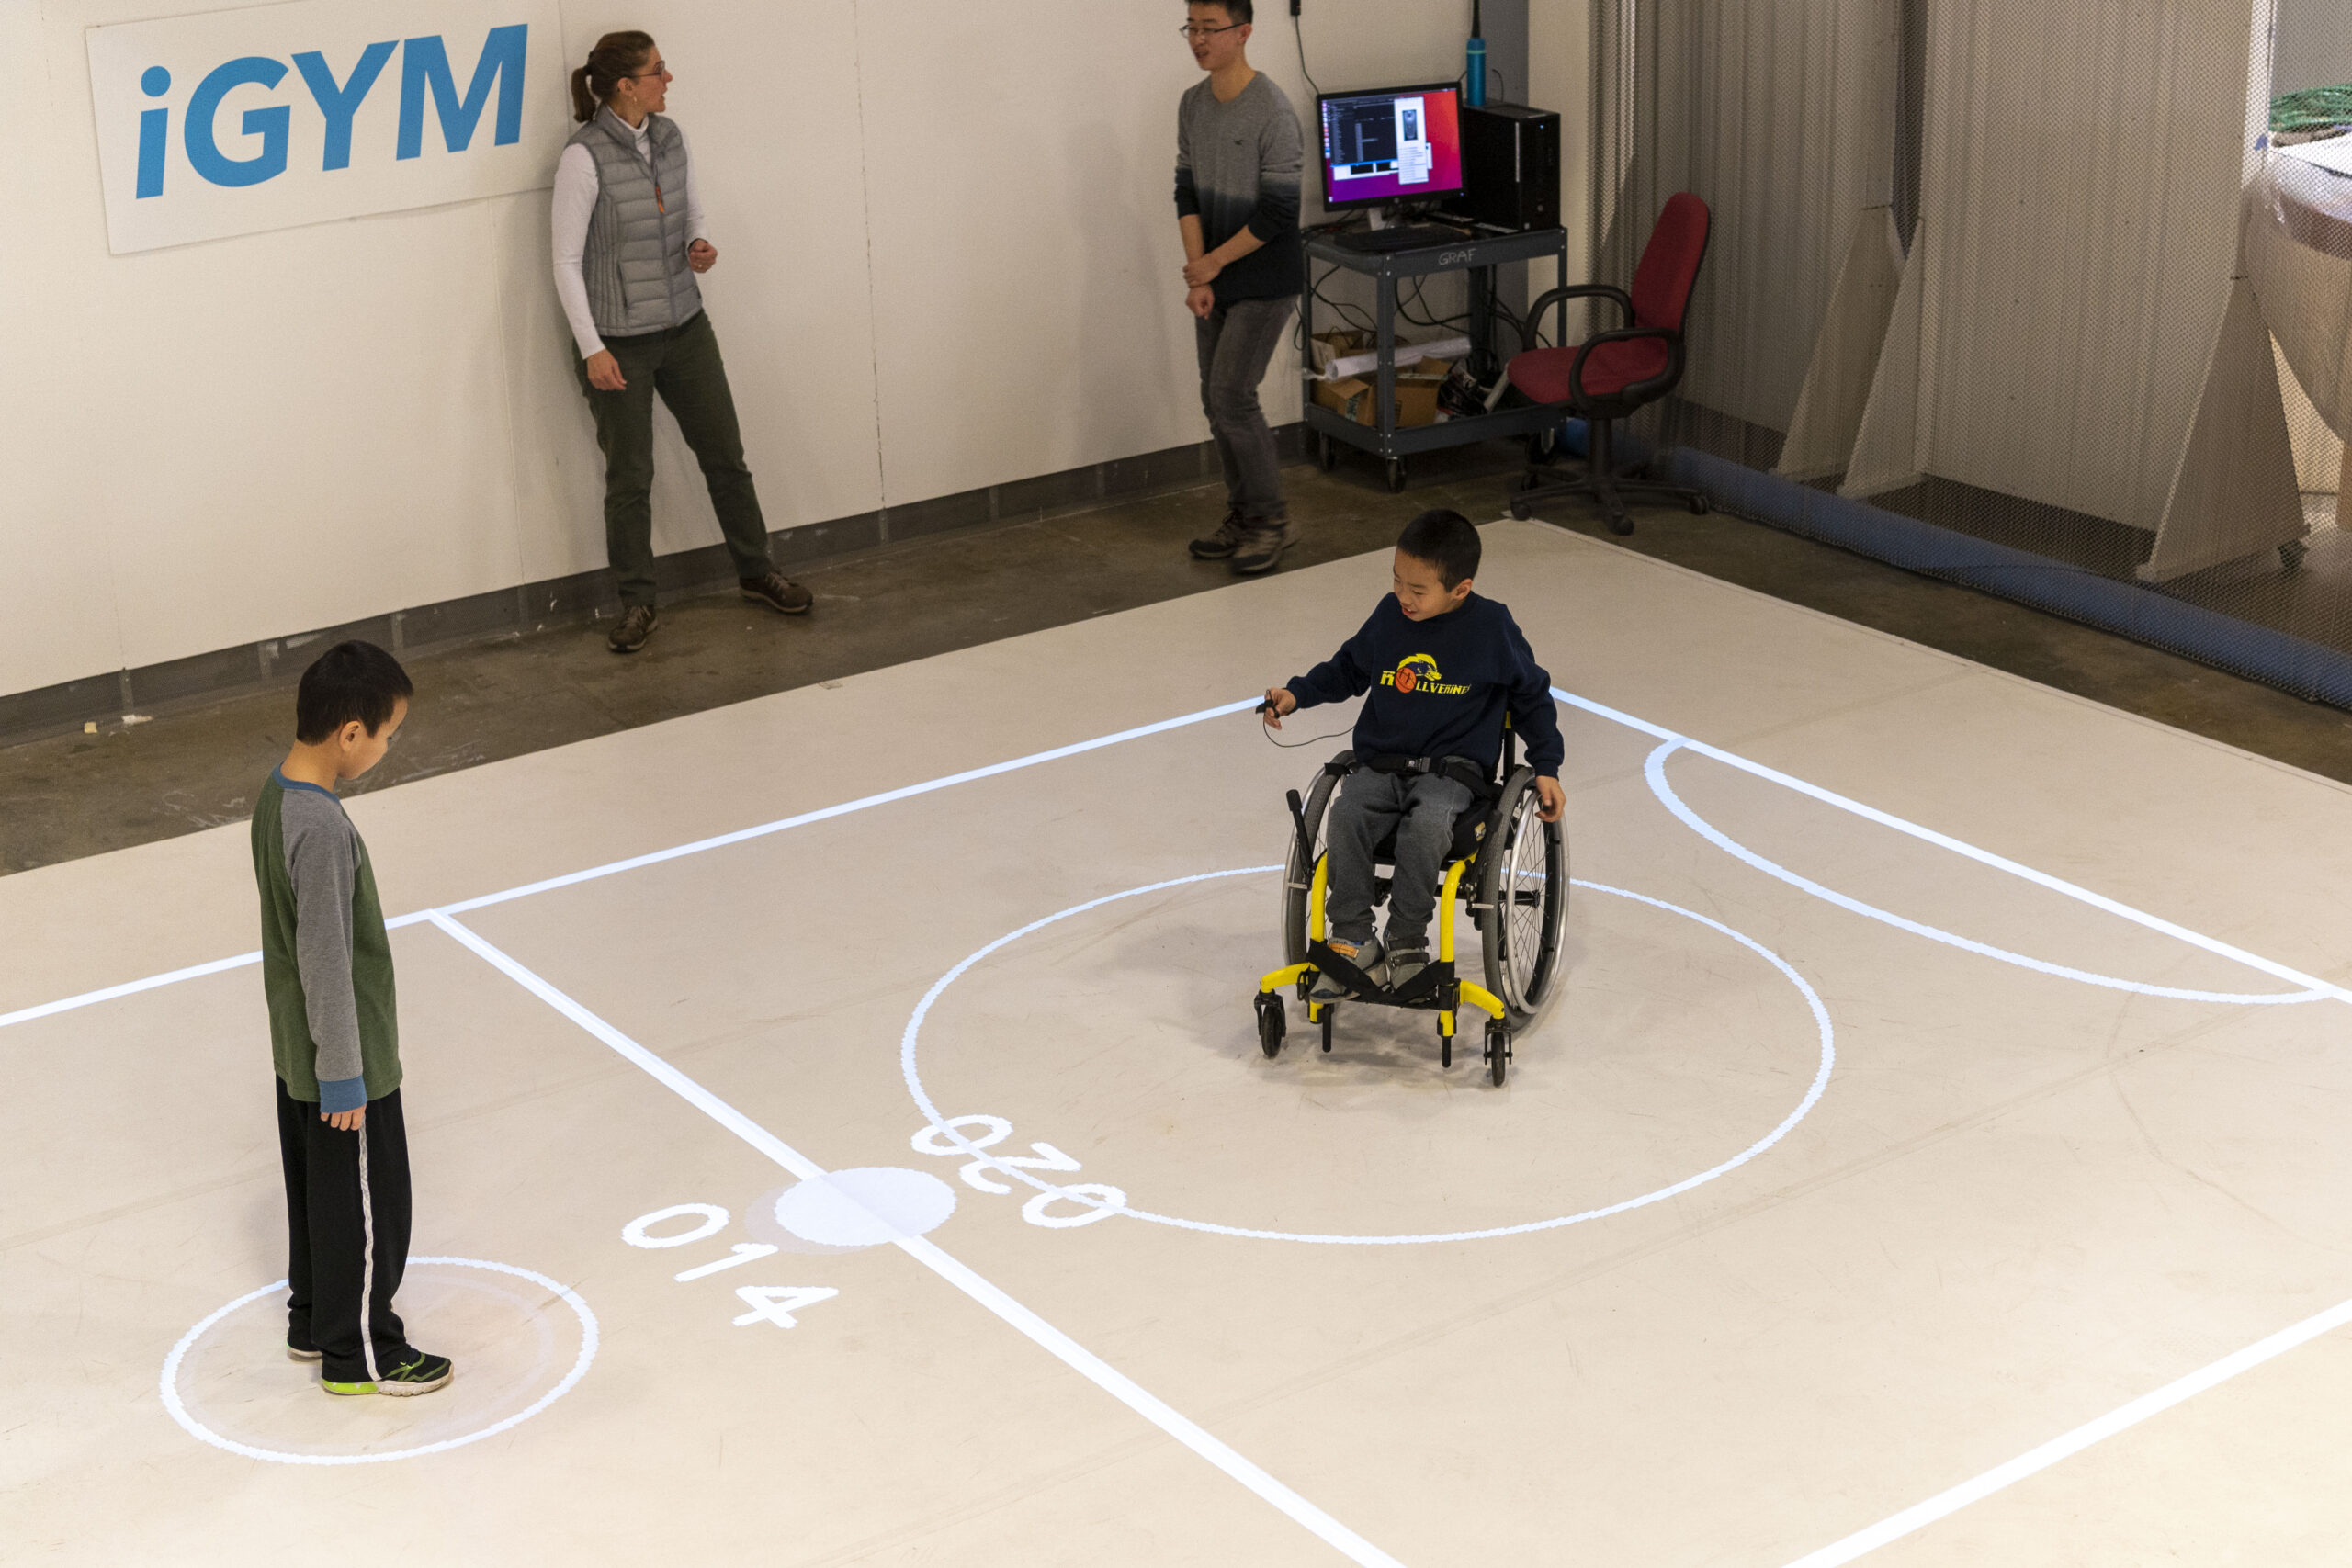 "Darren Kreps (left) and his brother Bryan Kreps participate in a ""play test"" of iGym, an augmented reality system created by a multidisciplinary team at the University of Michigan that promotes inclusive play and exercise. Image credit: Roger Hart/Michigan Photography."